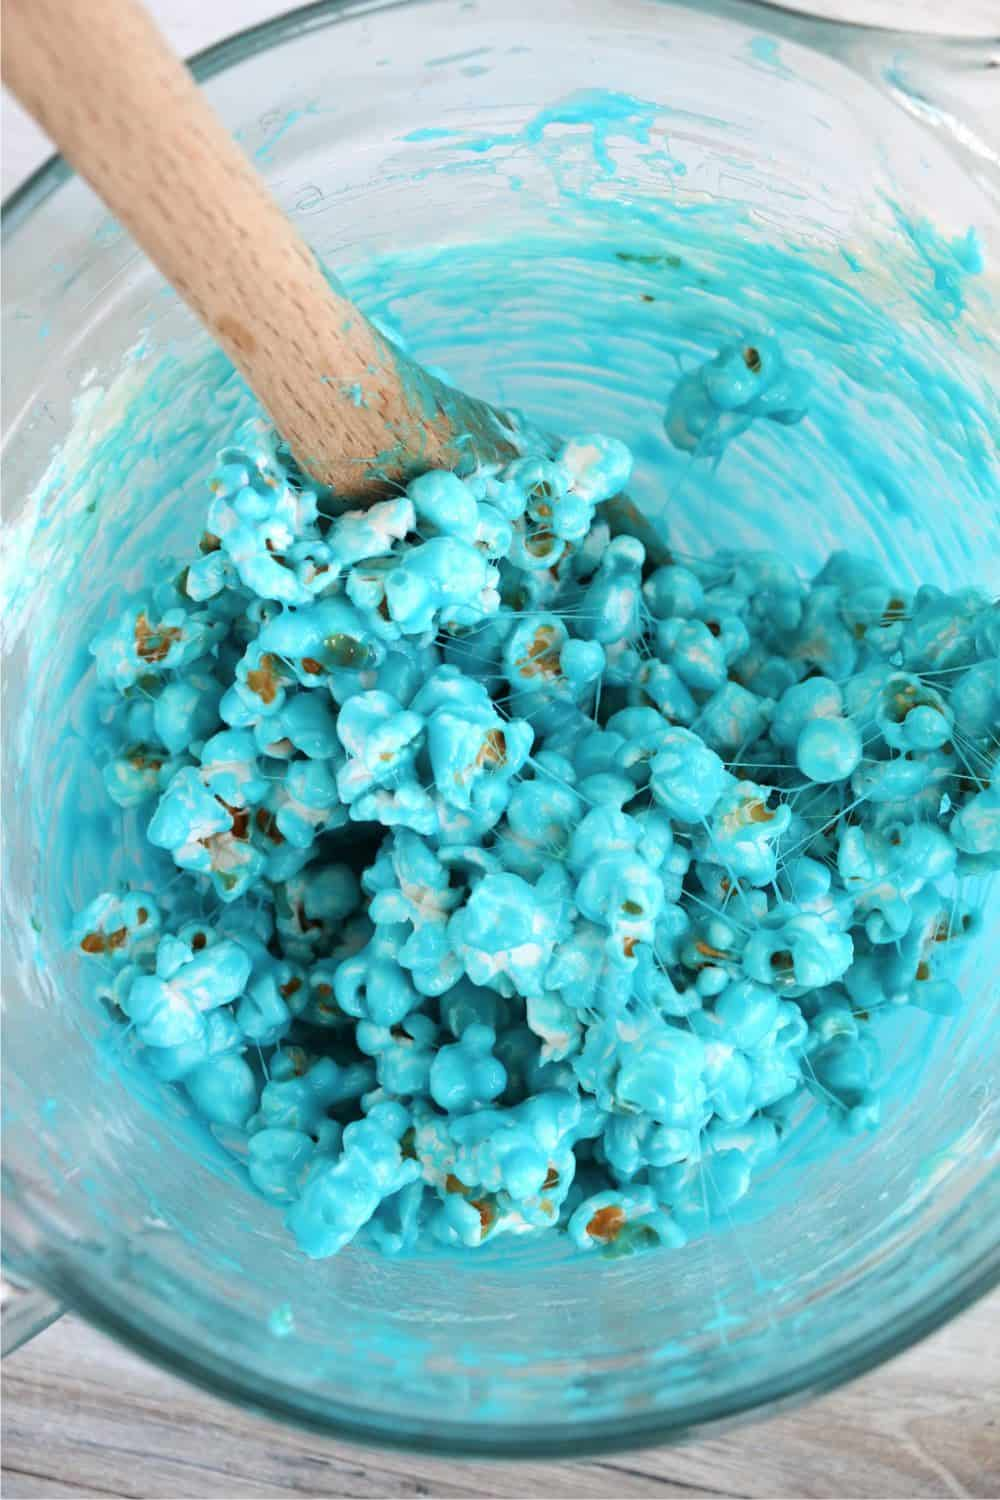 Stirring the popcorn in blue dyed melted marshamllows